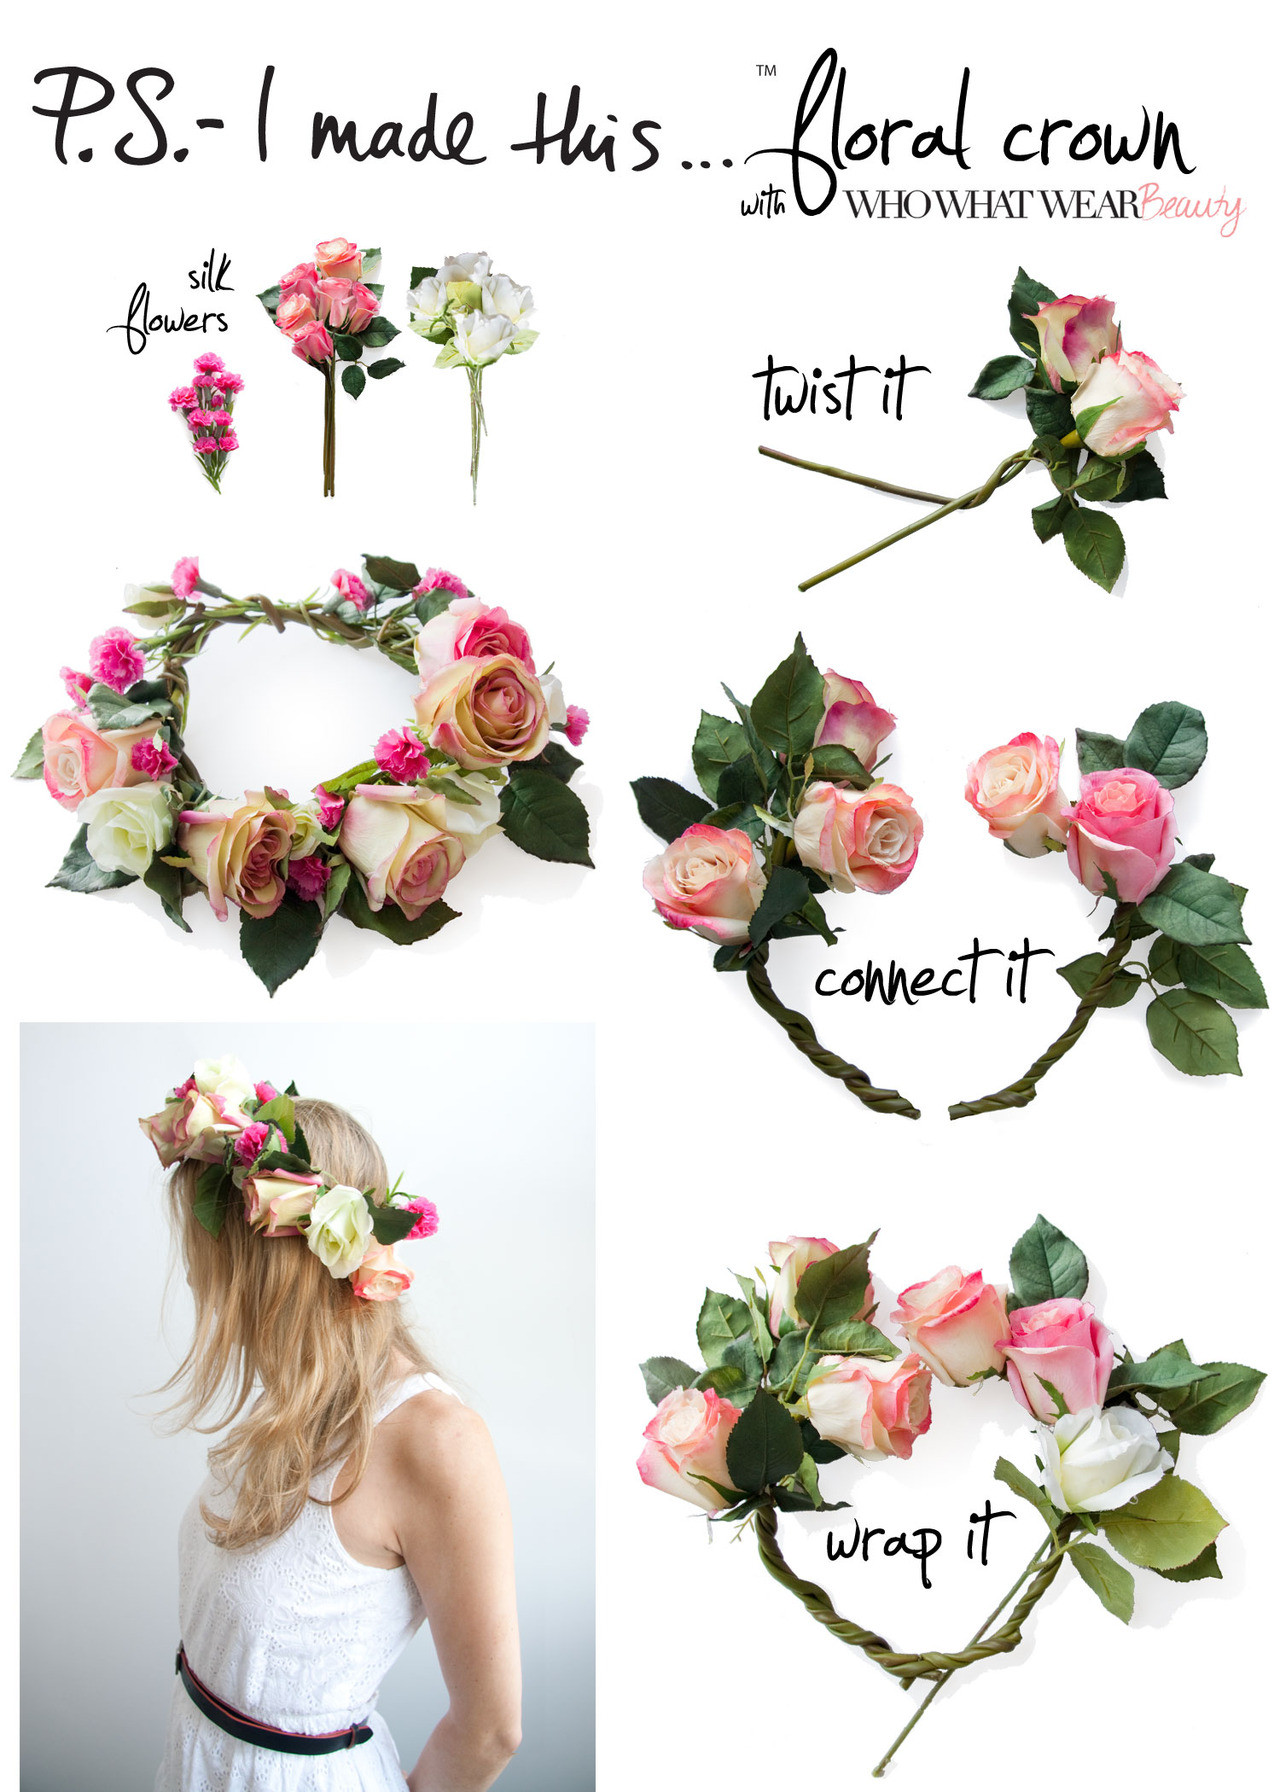 Best ideas about DIY Flower Crown . Save or Pin STYLE Loves DIY Flower Crown Now.